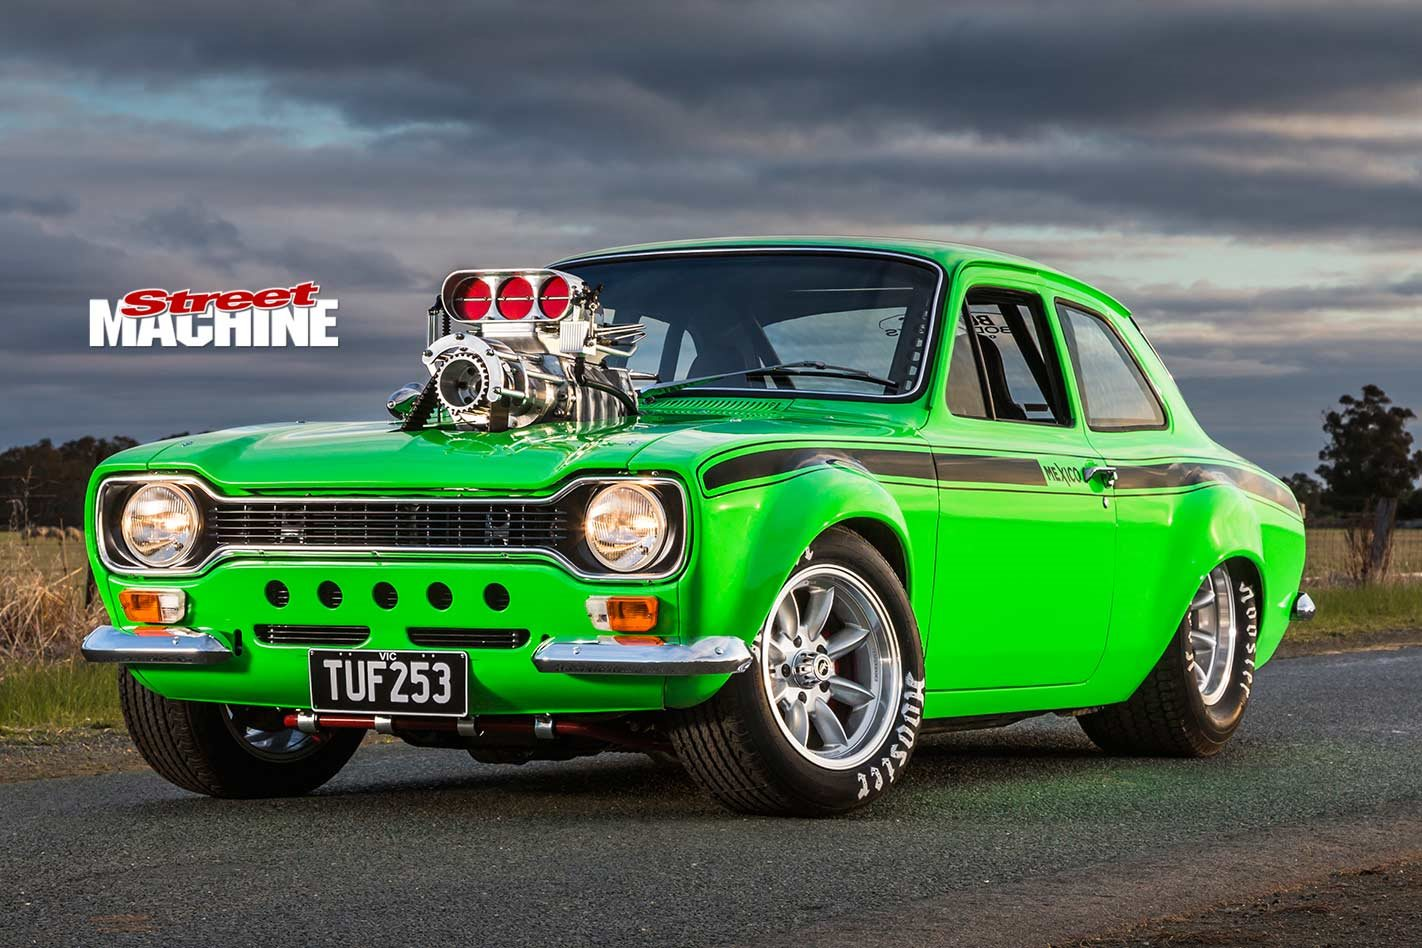 Supercharged Holden 253 Powered 1974 Ford Escort Mark I